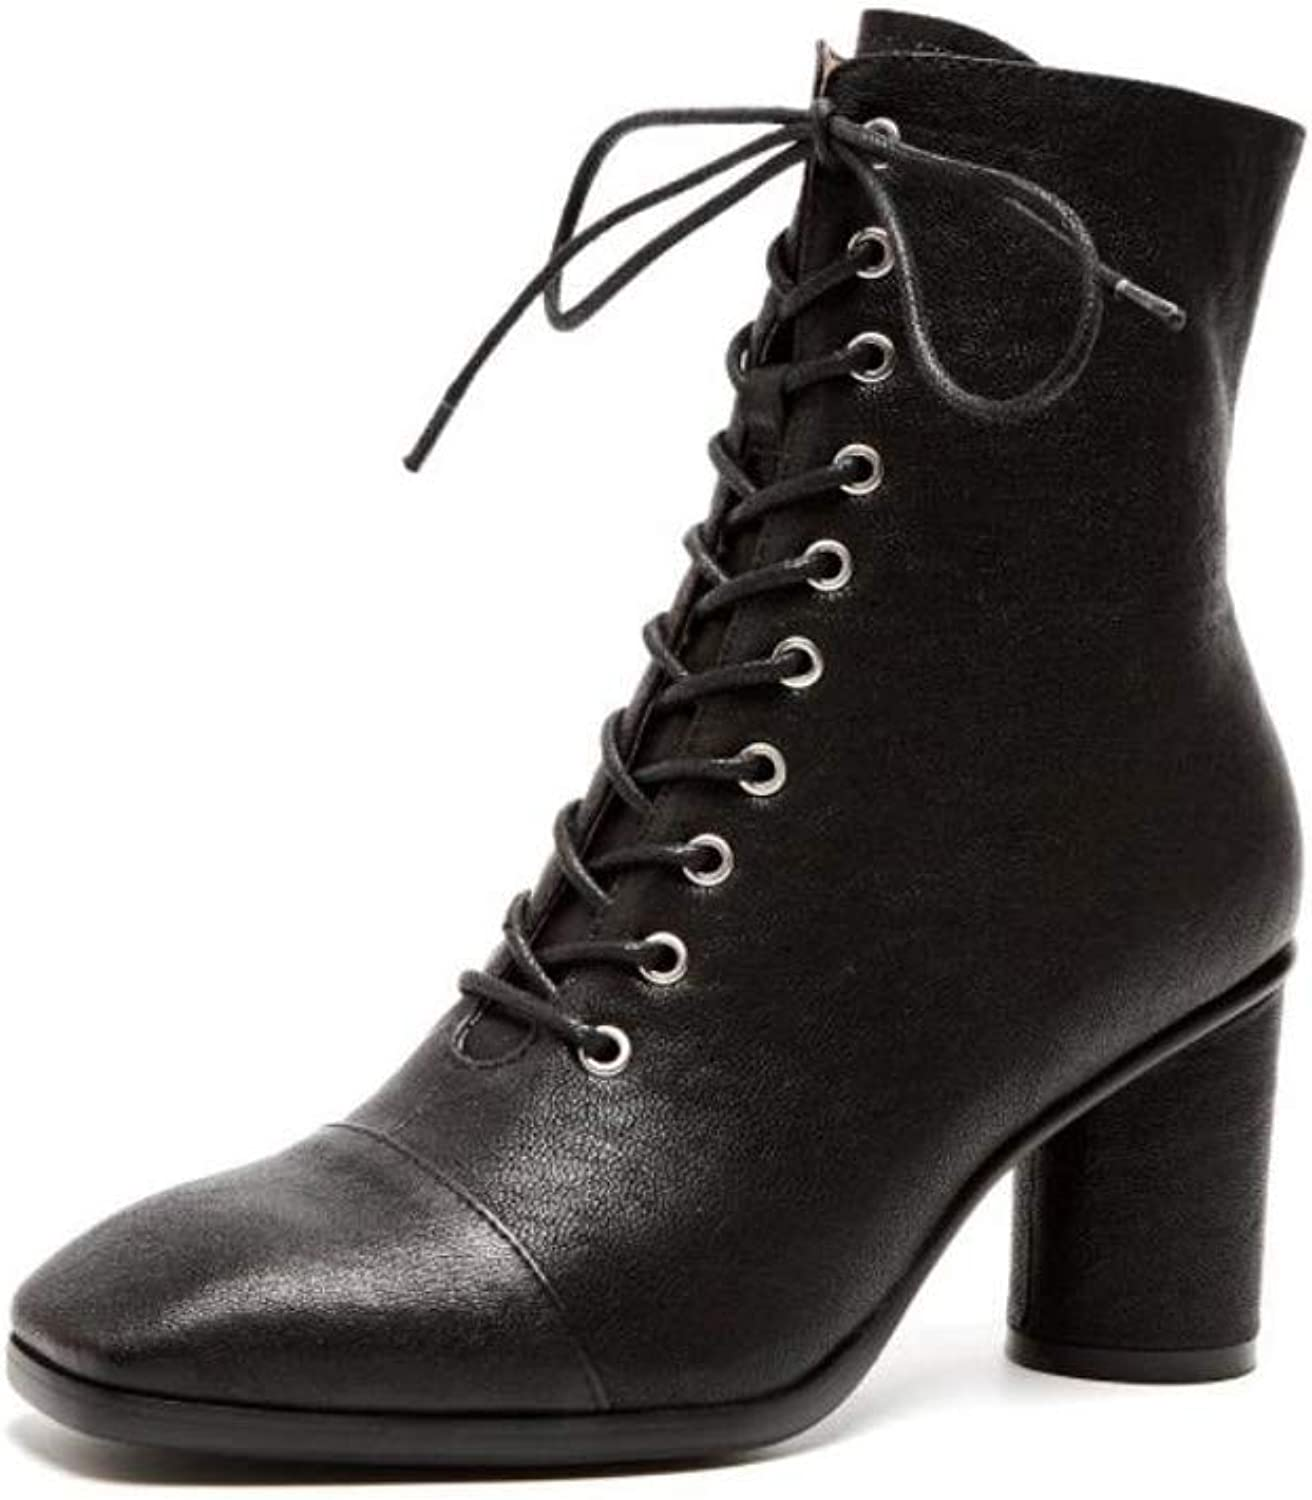 Small Boots Women's Martin Boots Women's Wild Thick High-Heeled Short Leather Ankle Boots